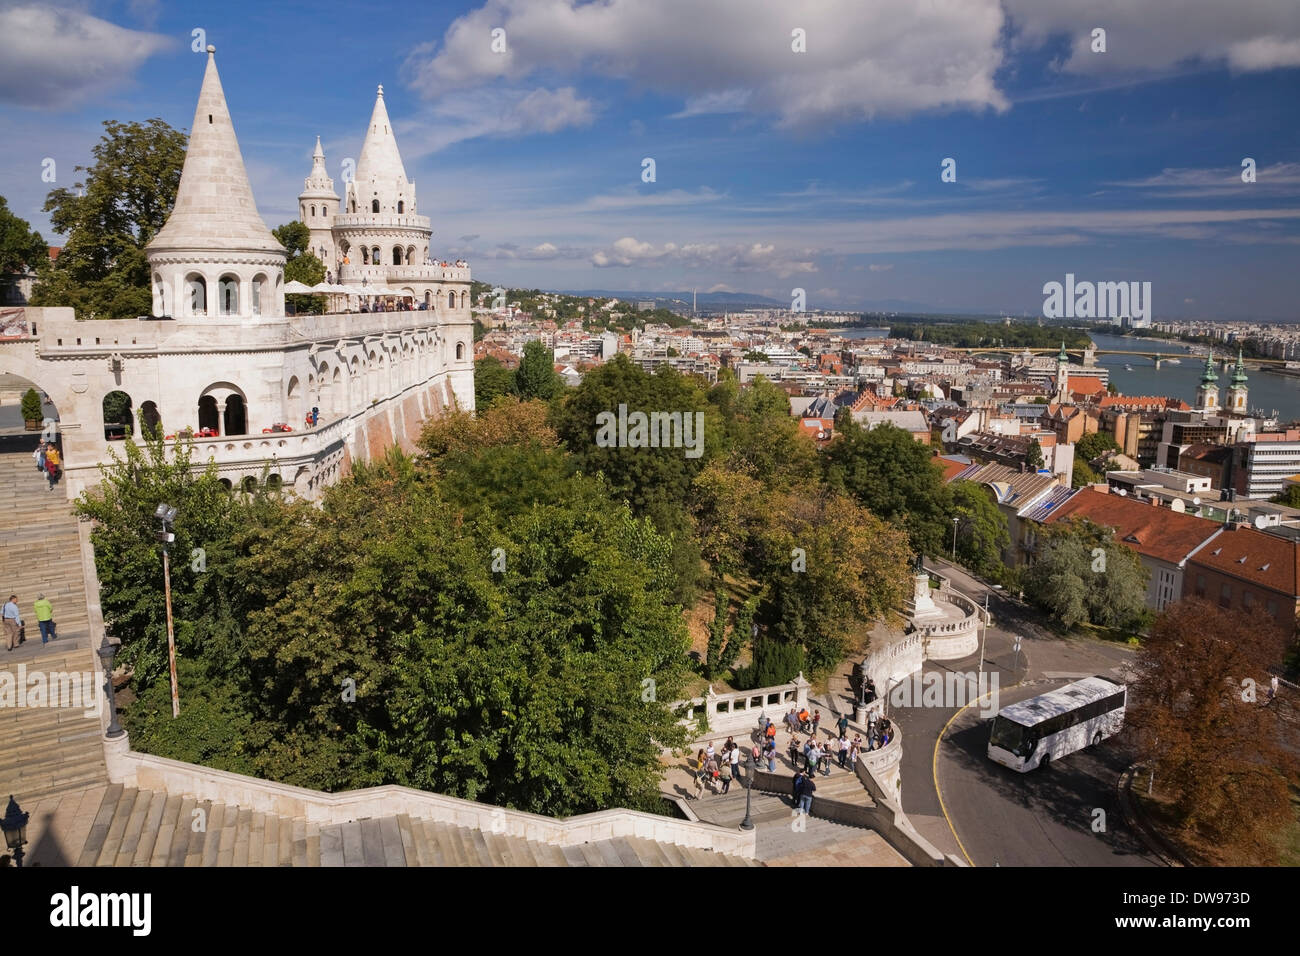 View across the city from Fisherman's Bastion at Castle district to Danube river, Hungary Stock Photo